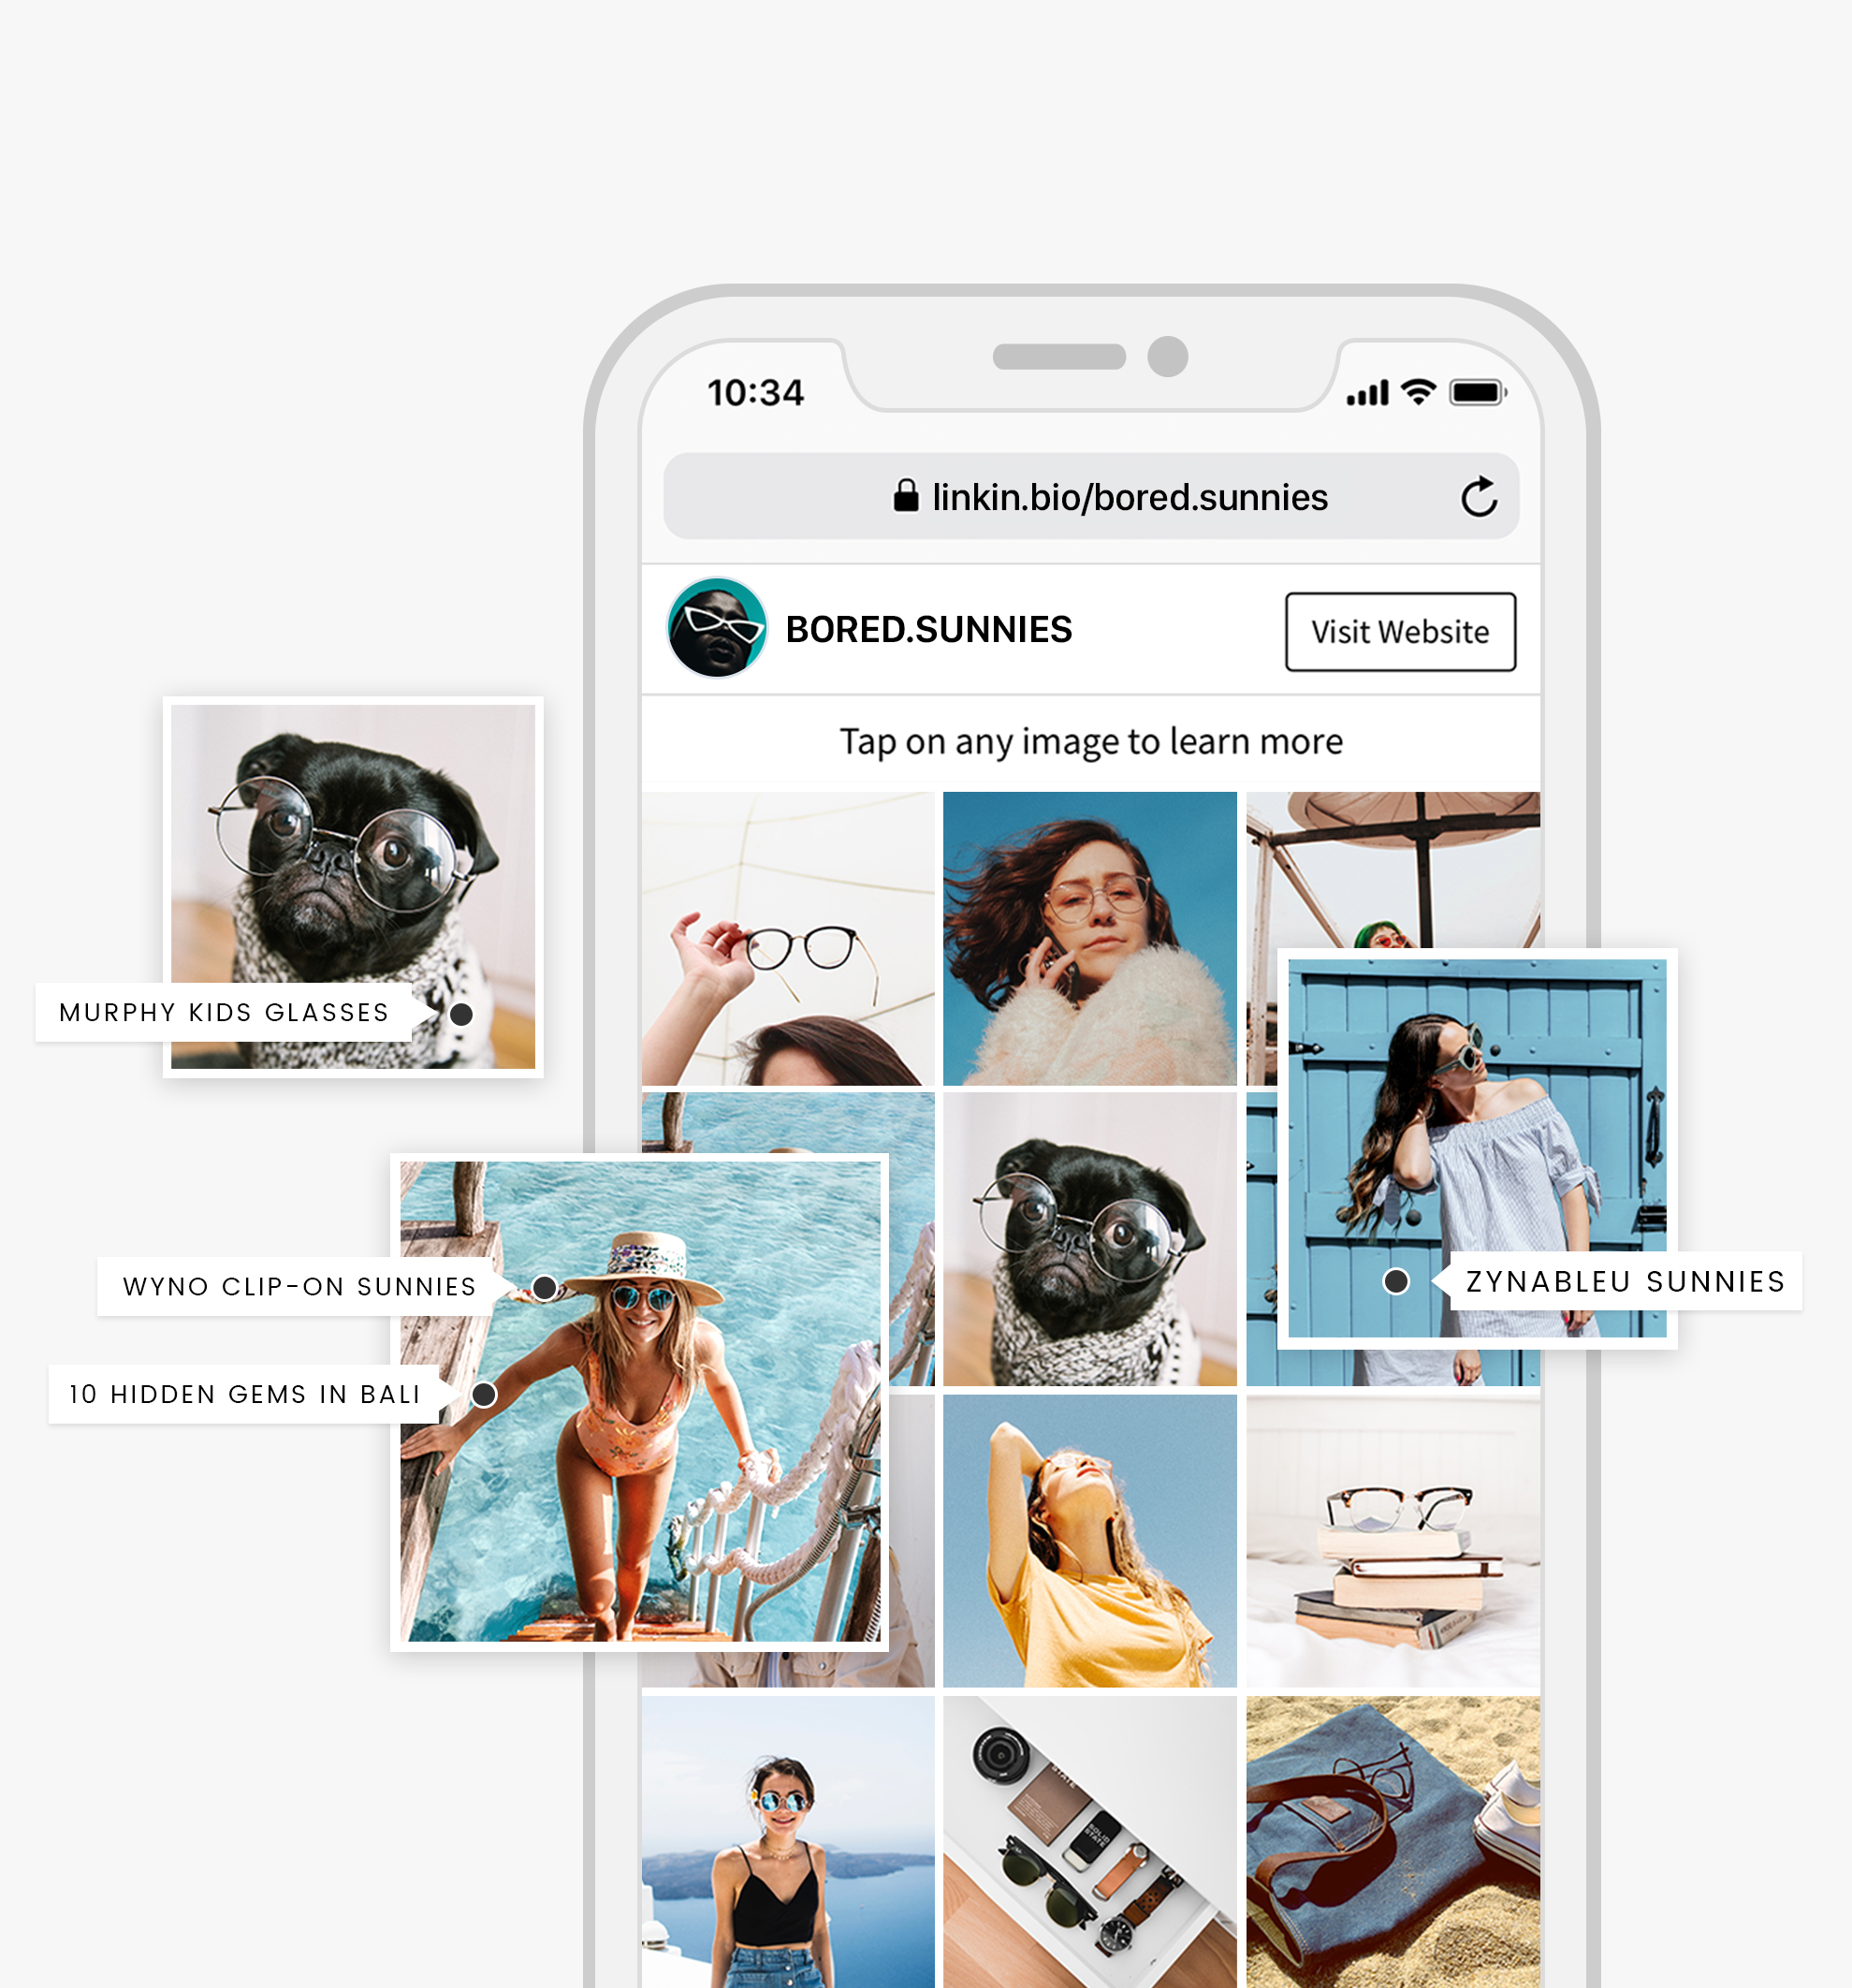 How to Effectively Drive Traffic from Instagram with Linkin.bio